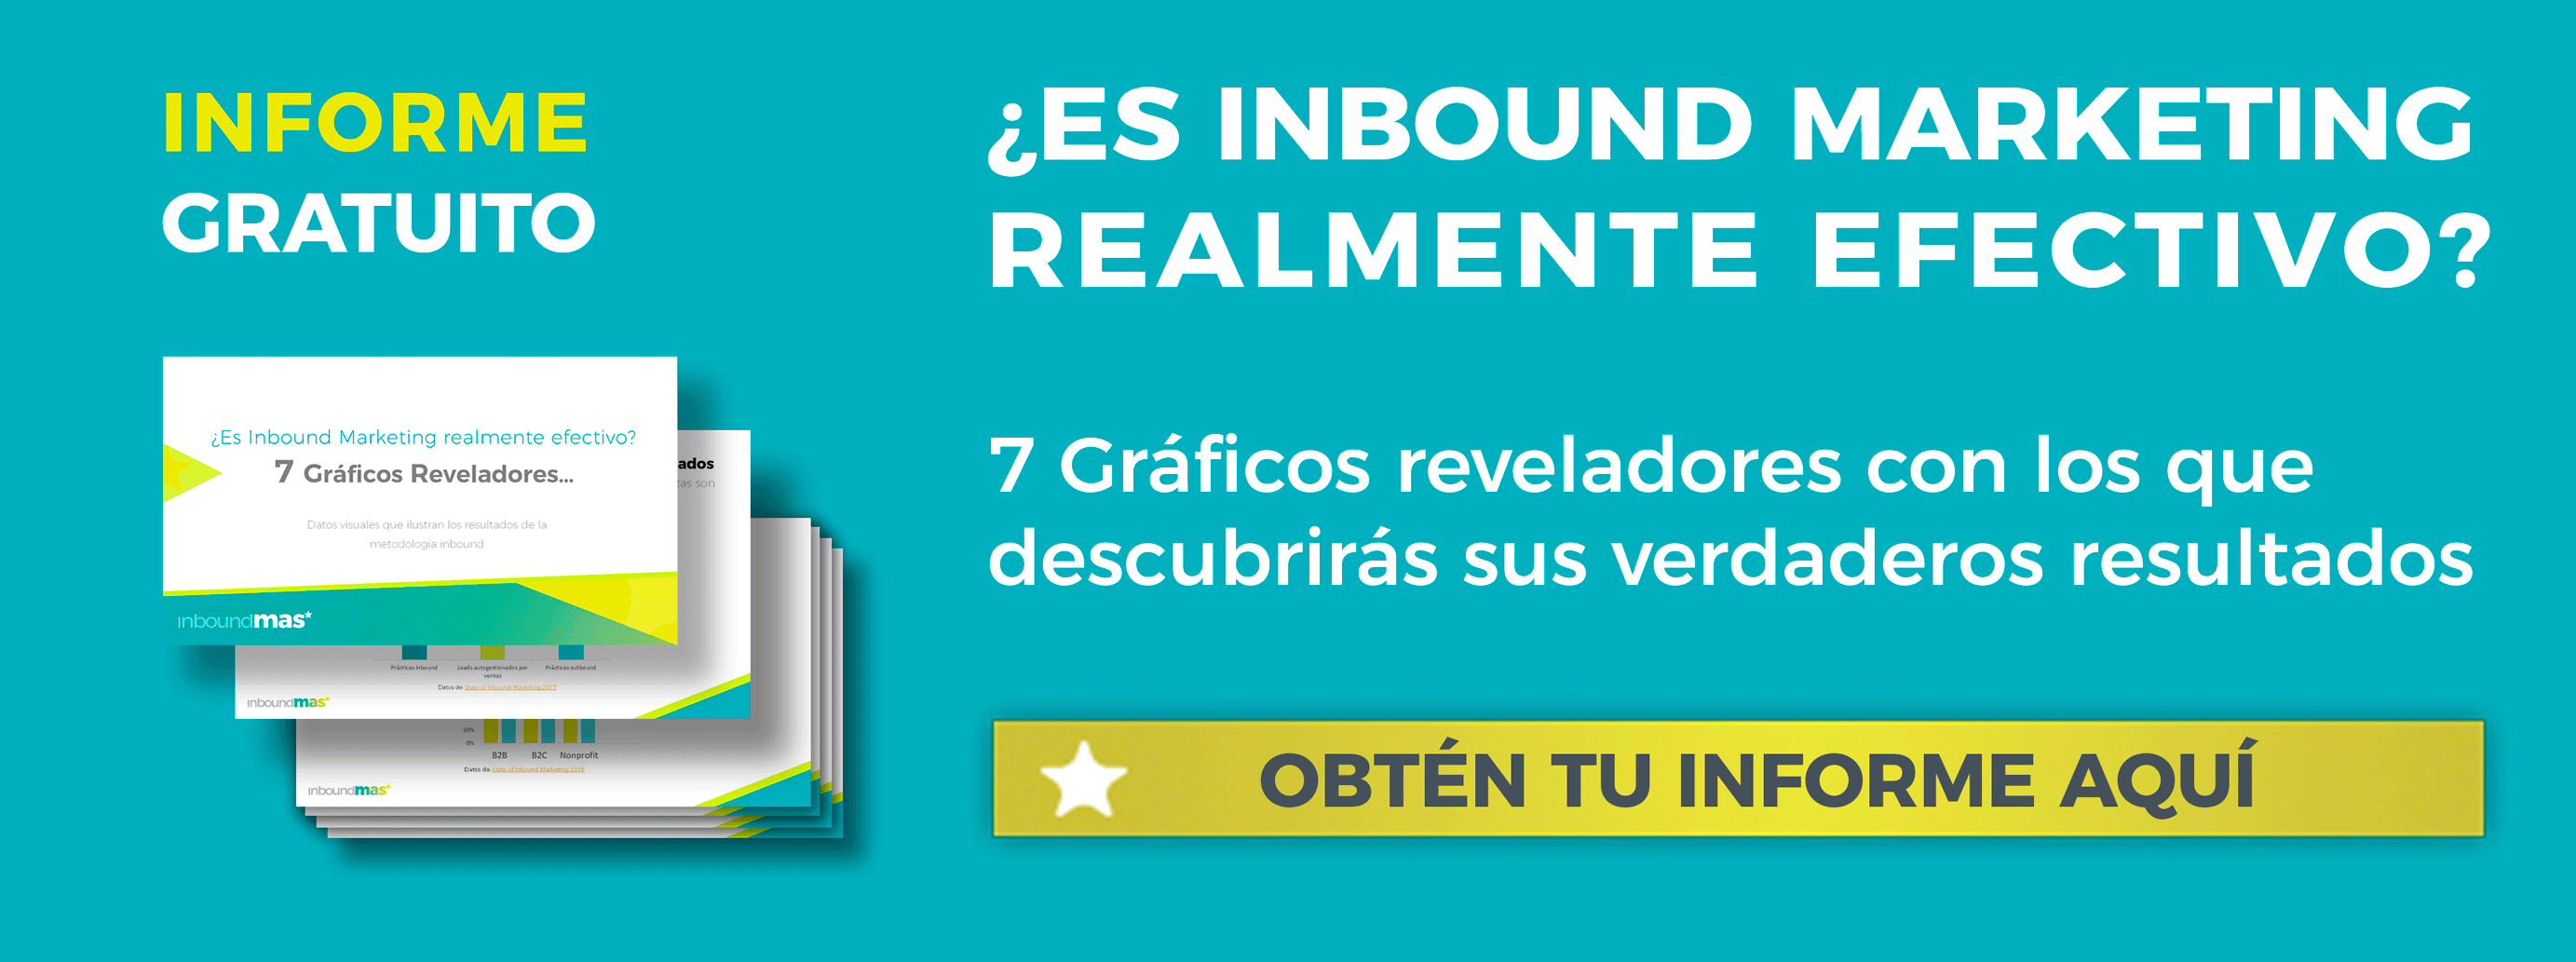 Descarga gratis el informe sobre los resultados del inbound marketing